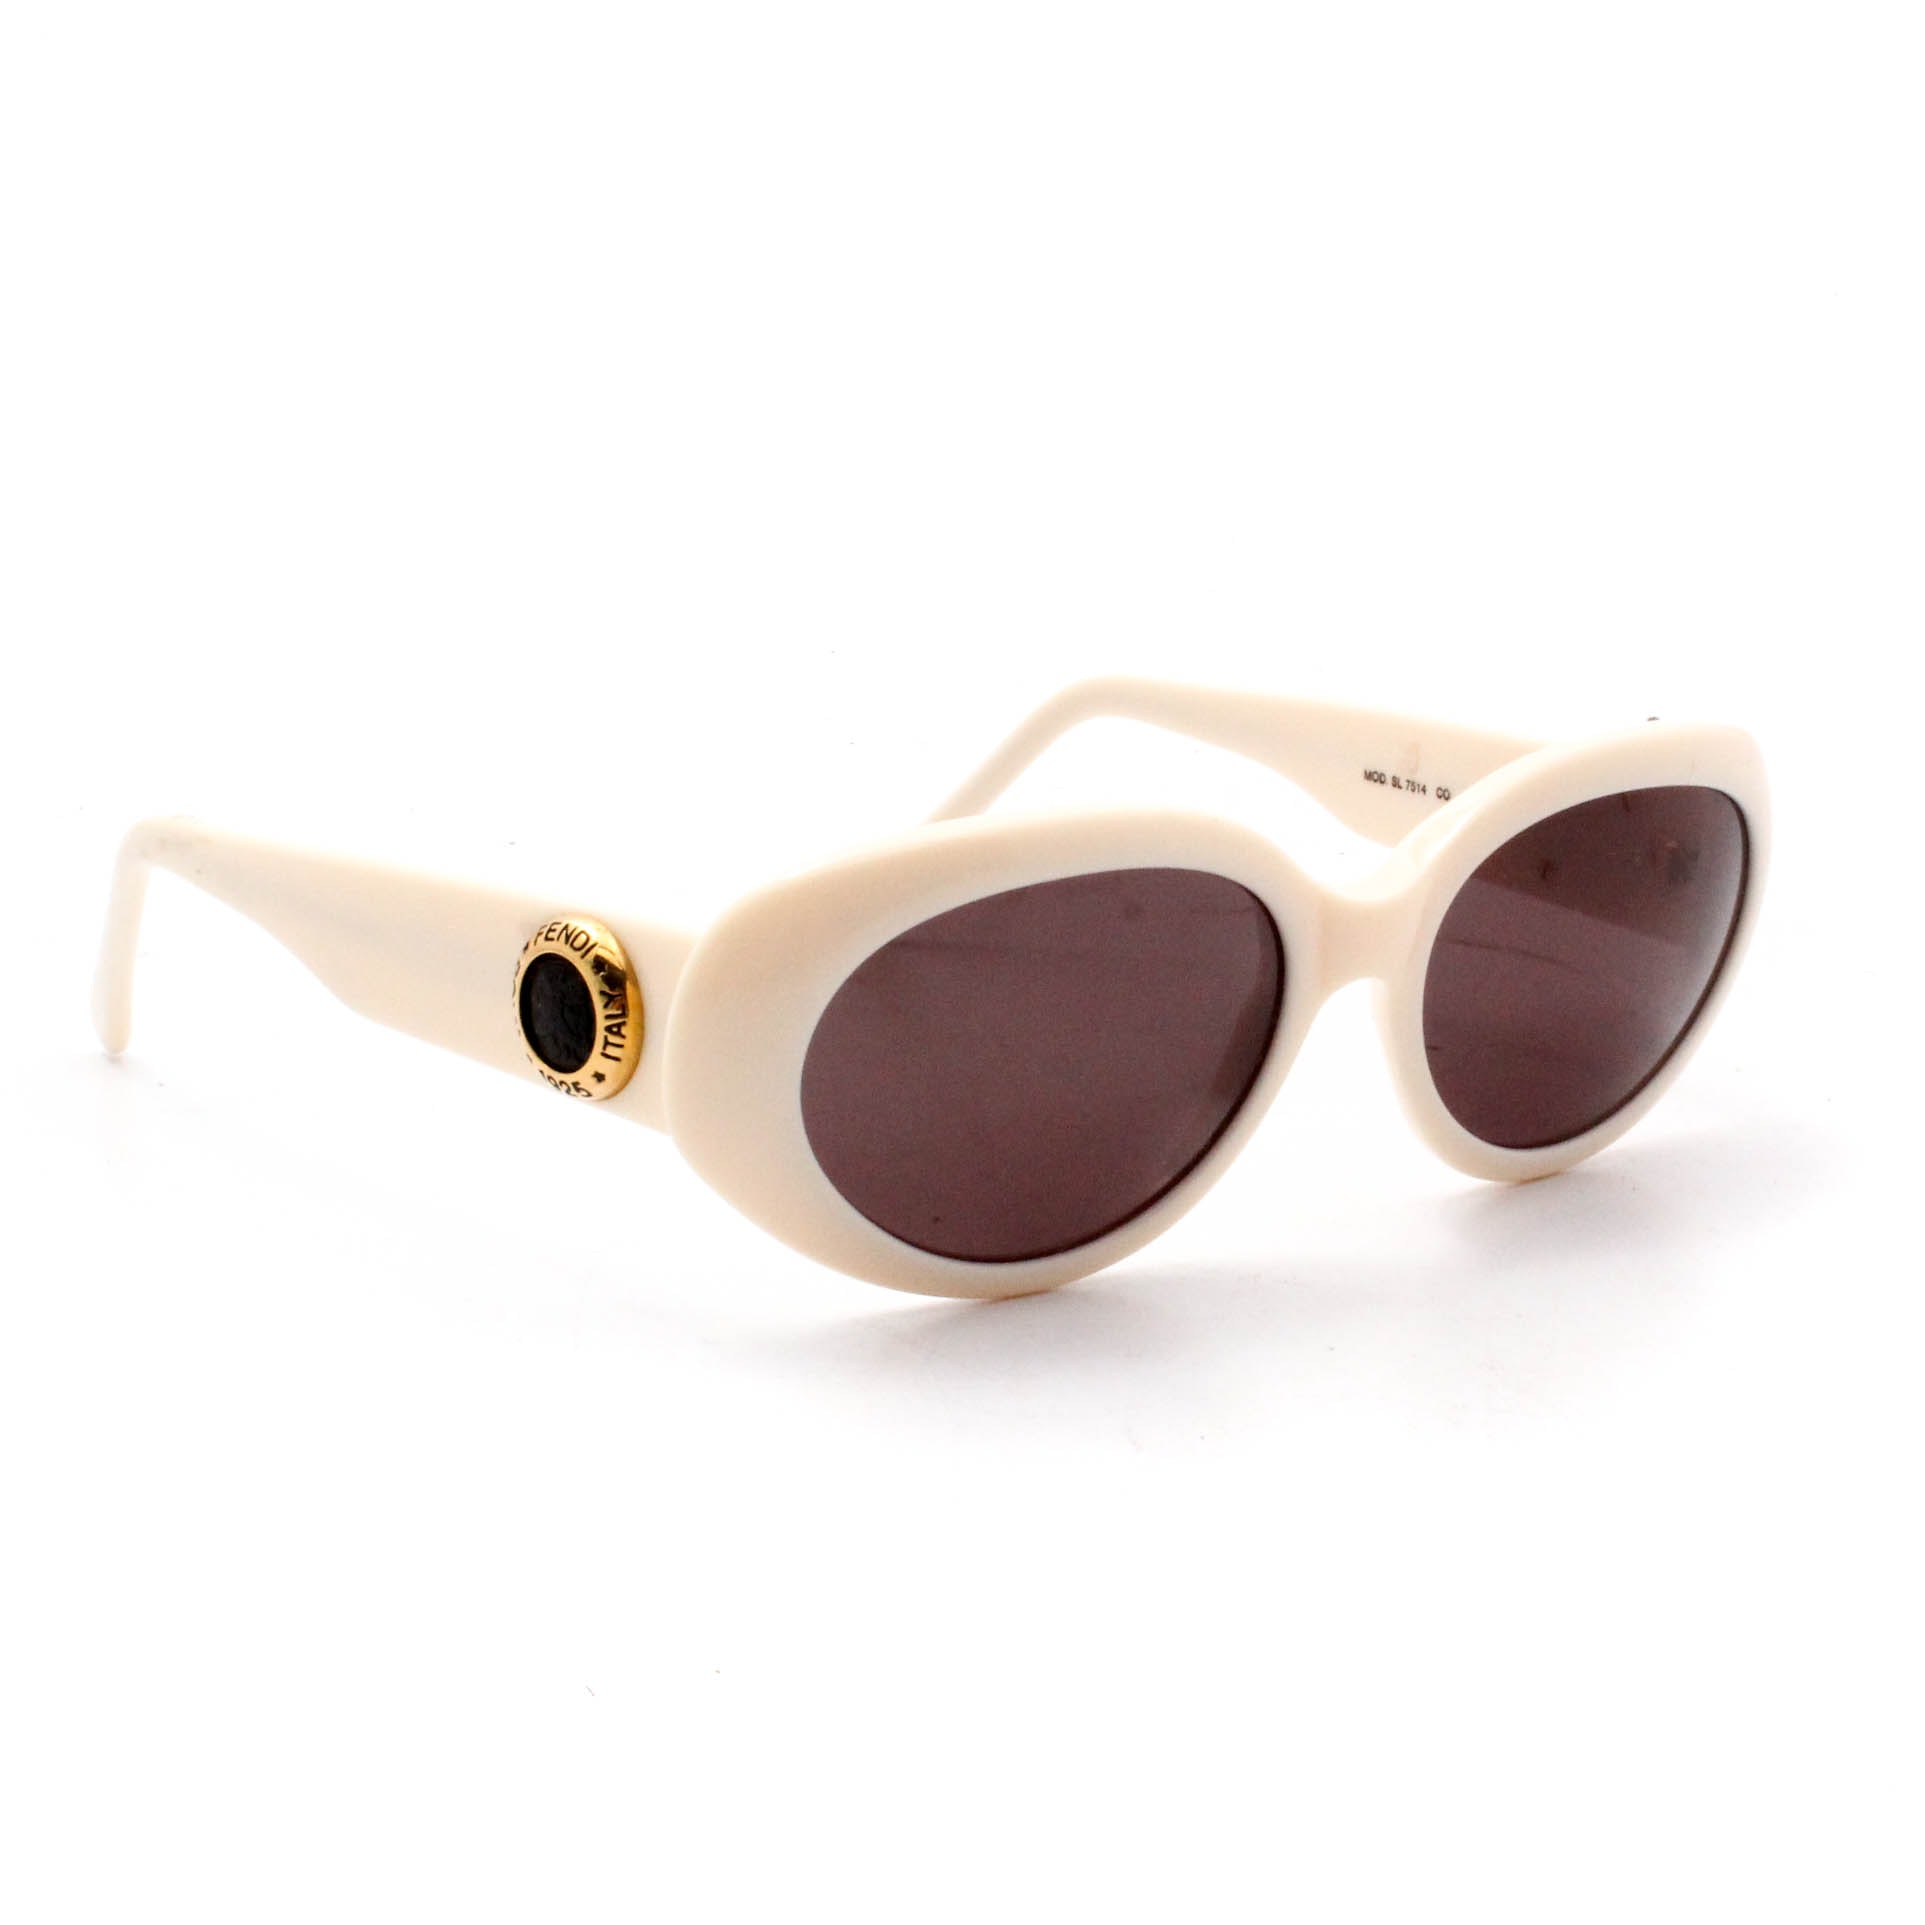 Fendi Sunglasses, Made in Italy